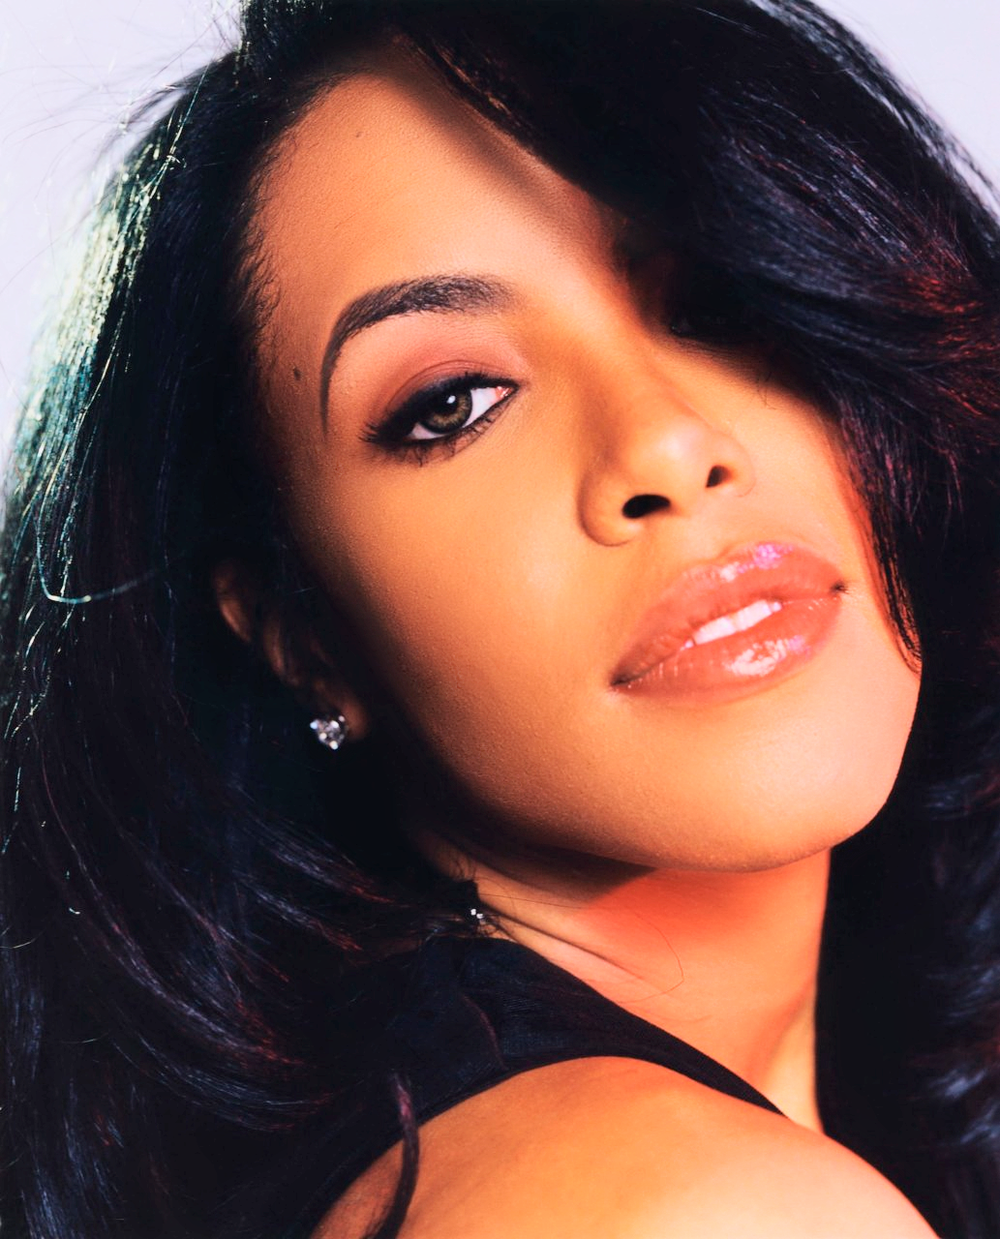 a closeup headshot of Aaliyah RIP Babygirl.jpg